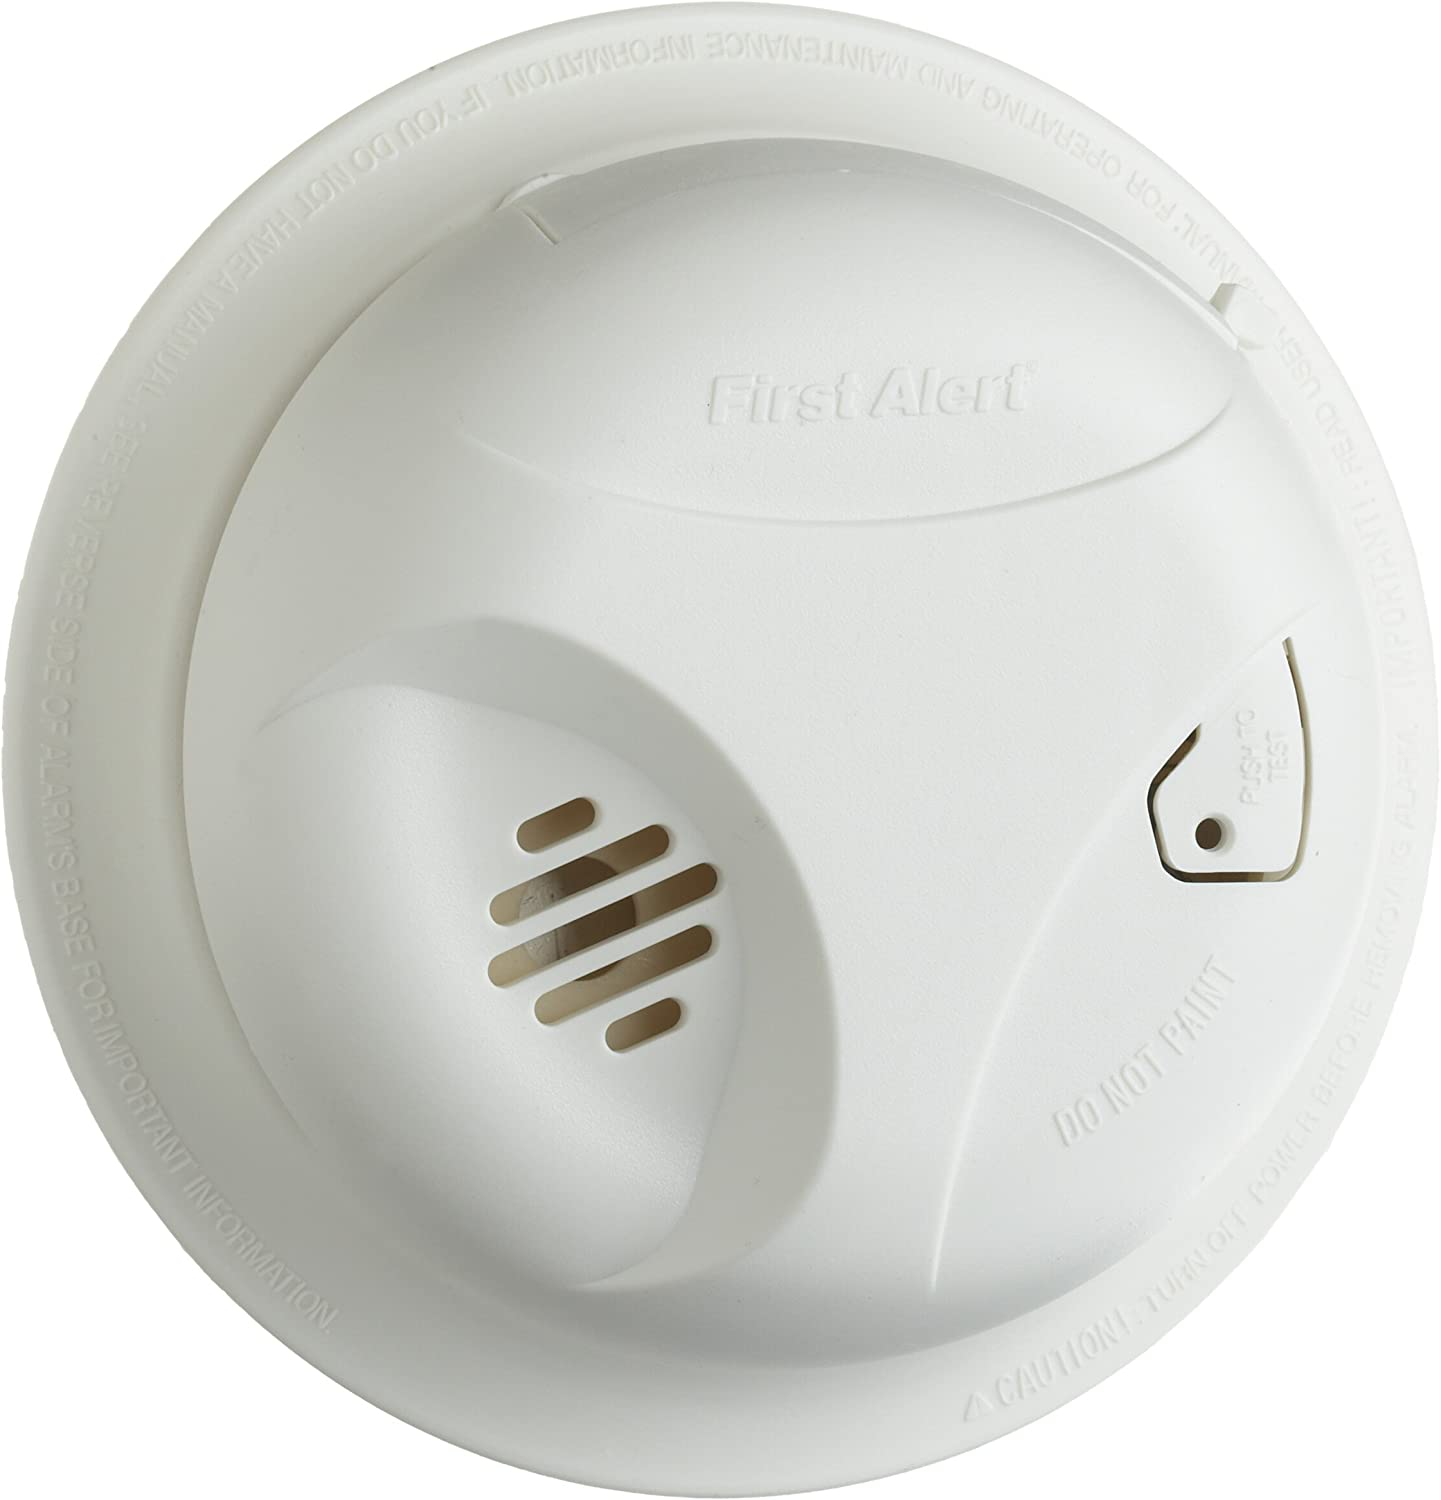 First Alert Sa300cn3 Smoke Alarm With Test Button Smoke